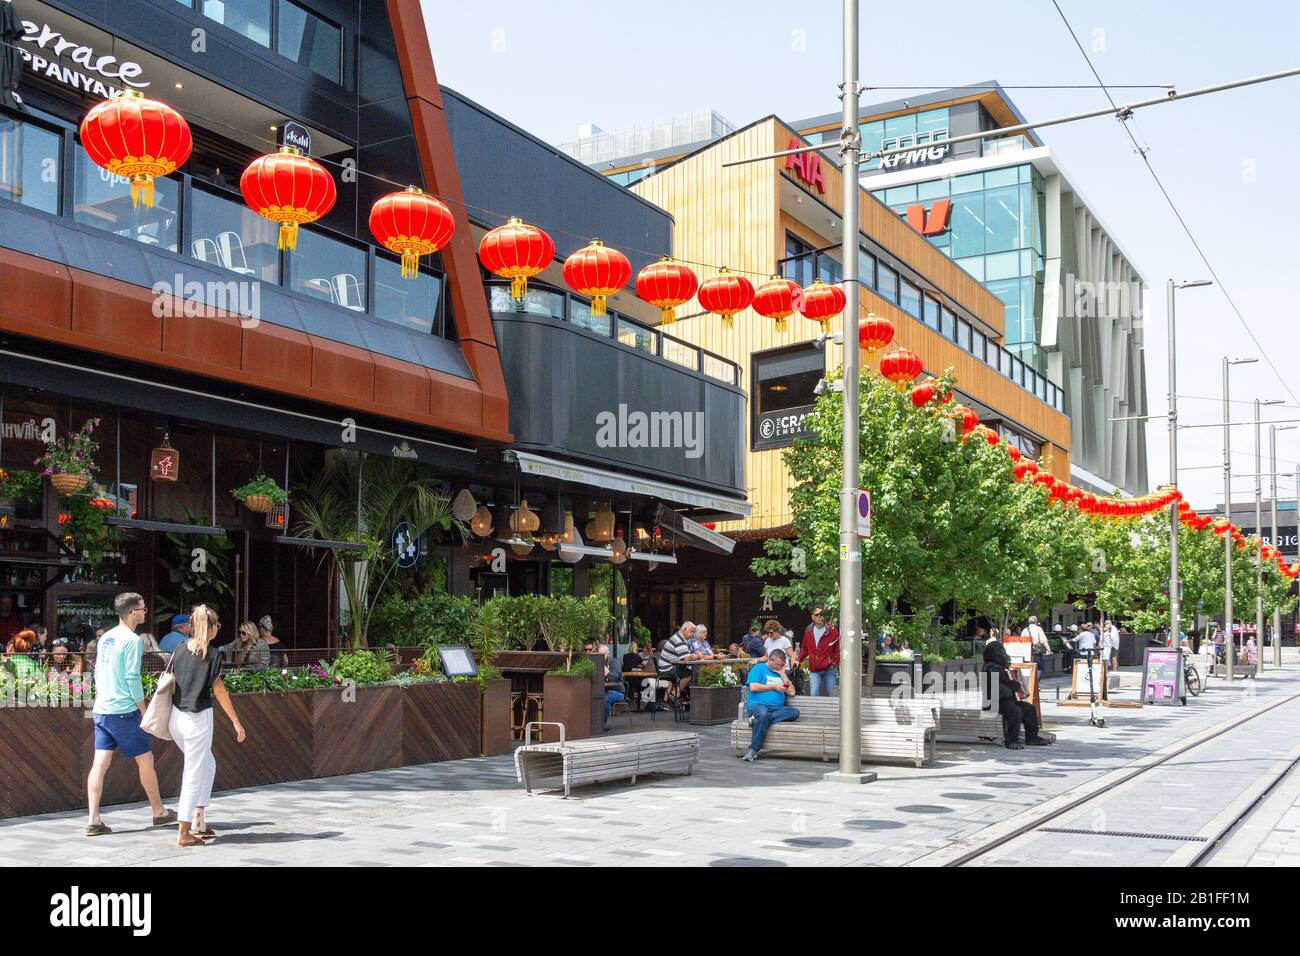 Bars And Restaurants On The Terrace Oxford Terrace Christchurch Central City Christchurch Canterbury Region New Zealand Stock Photo Alamy